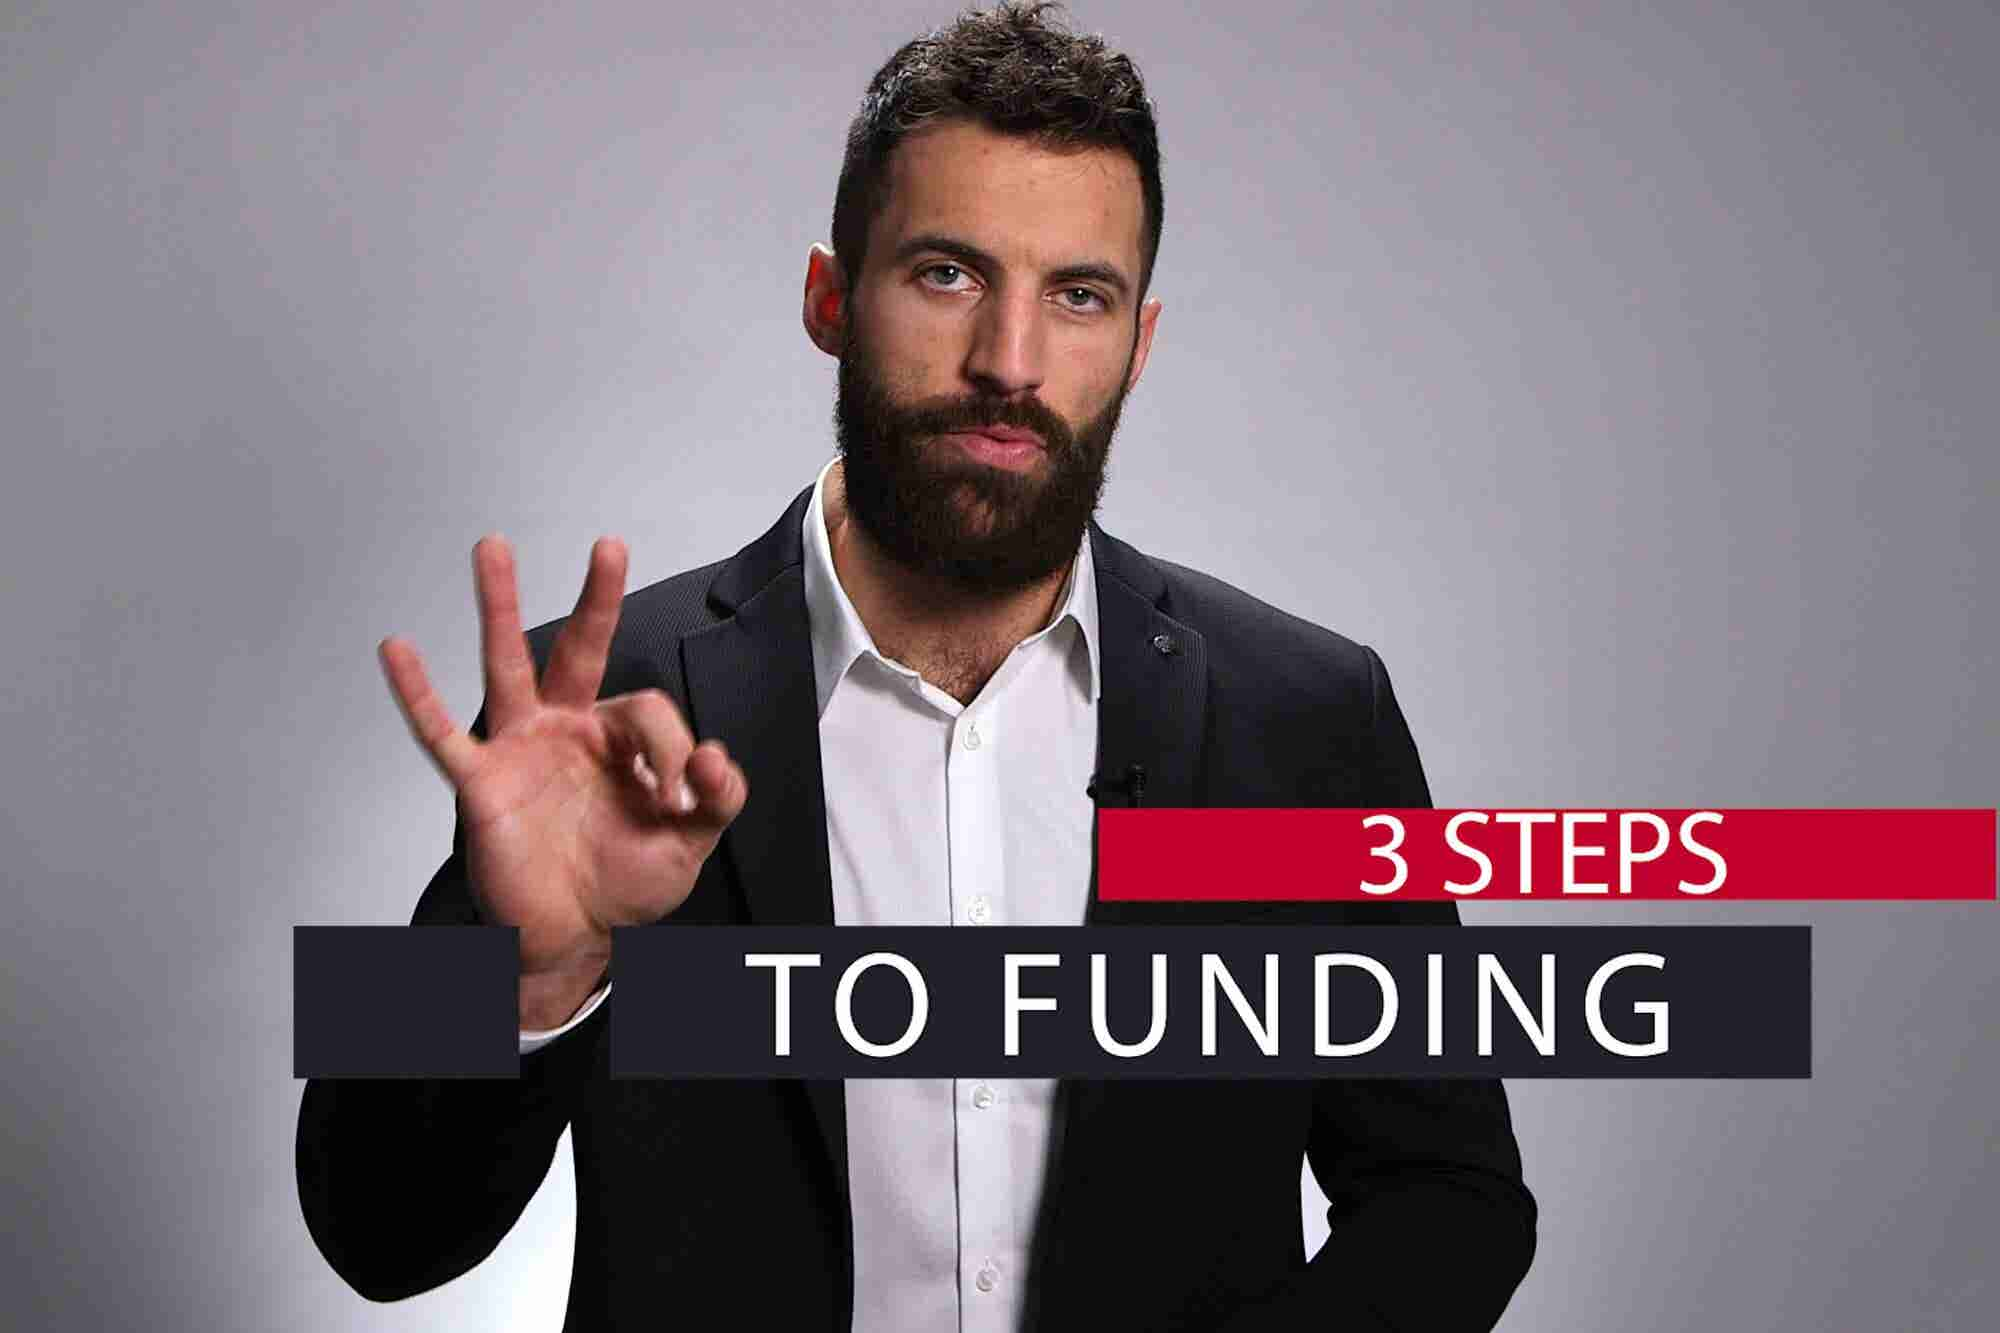 3 Tips for Securing Funding From the Co-Founder of the All-New Premier Lacrosse League